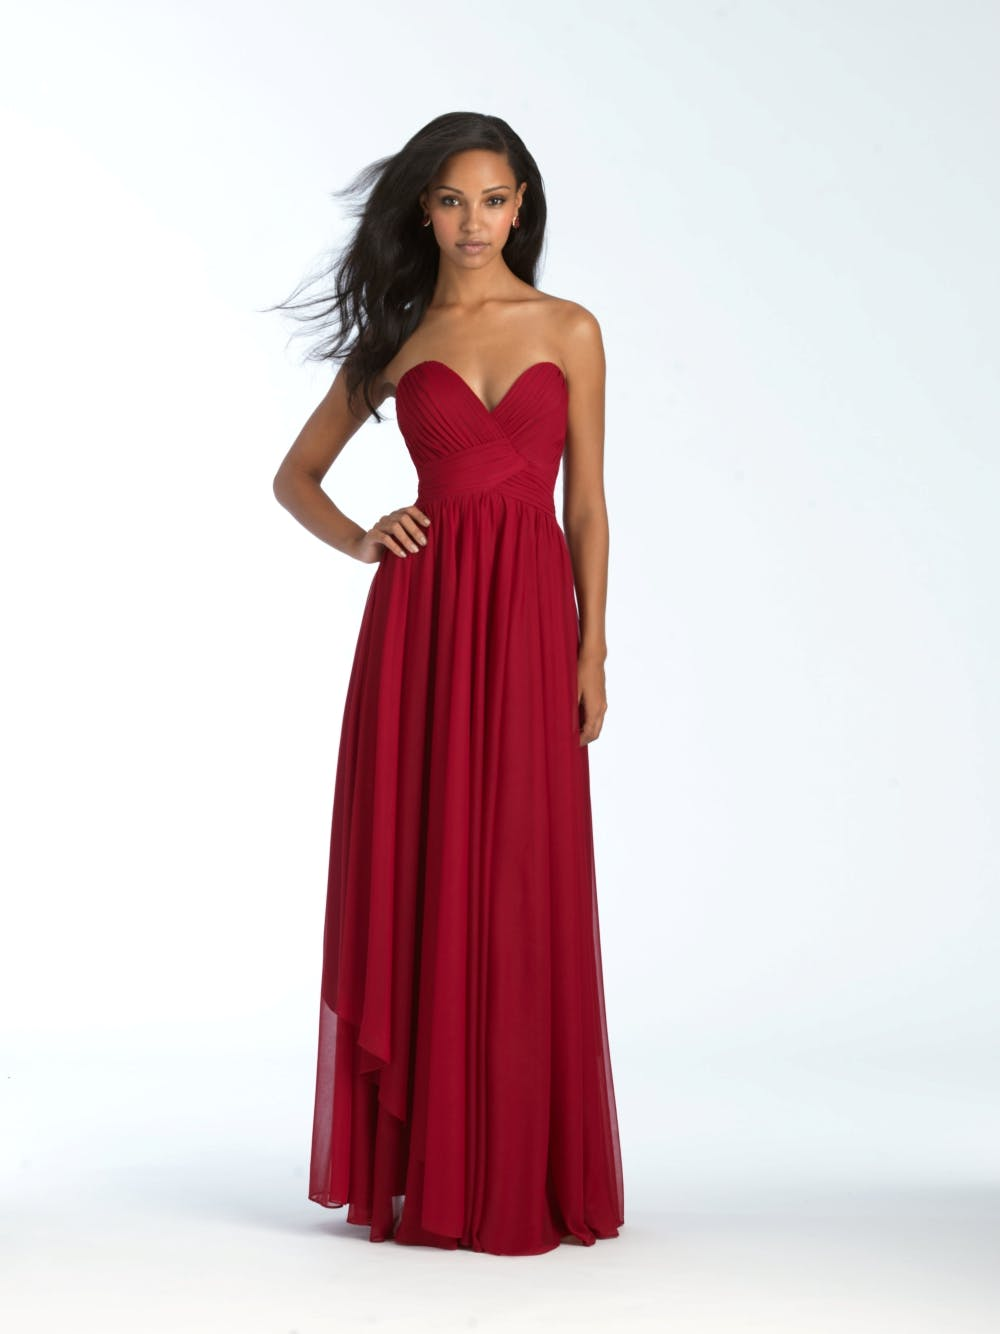 strapless-red-bridesmaid-dress